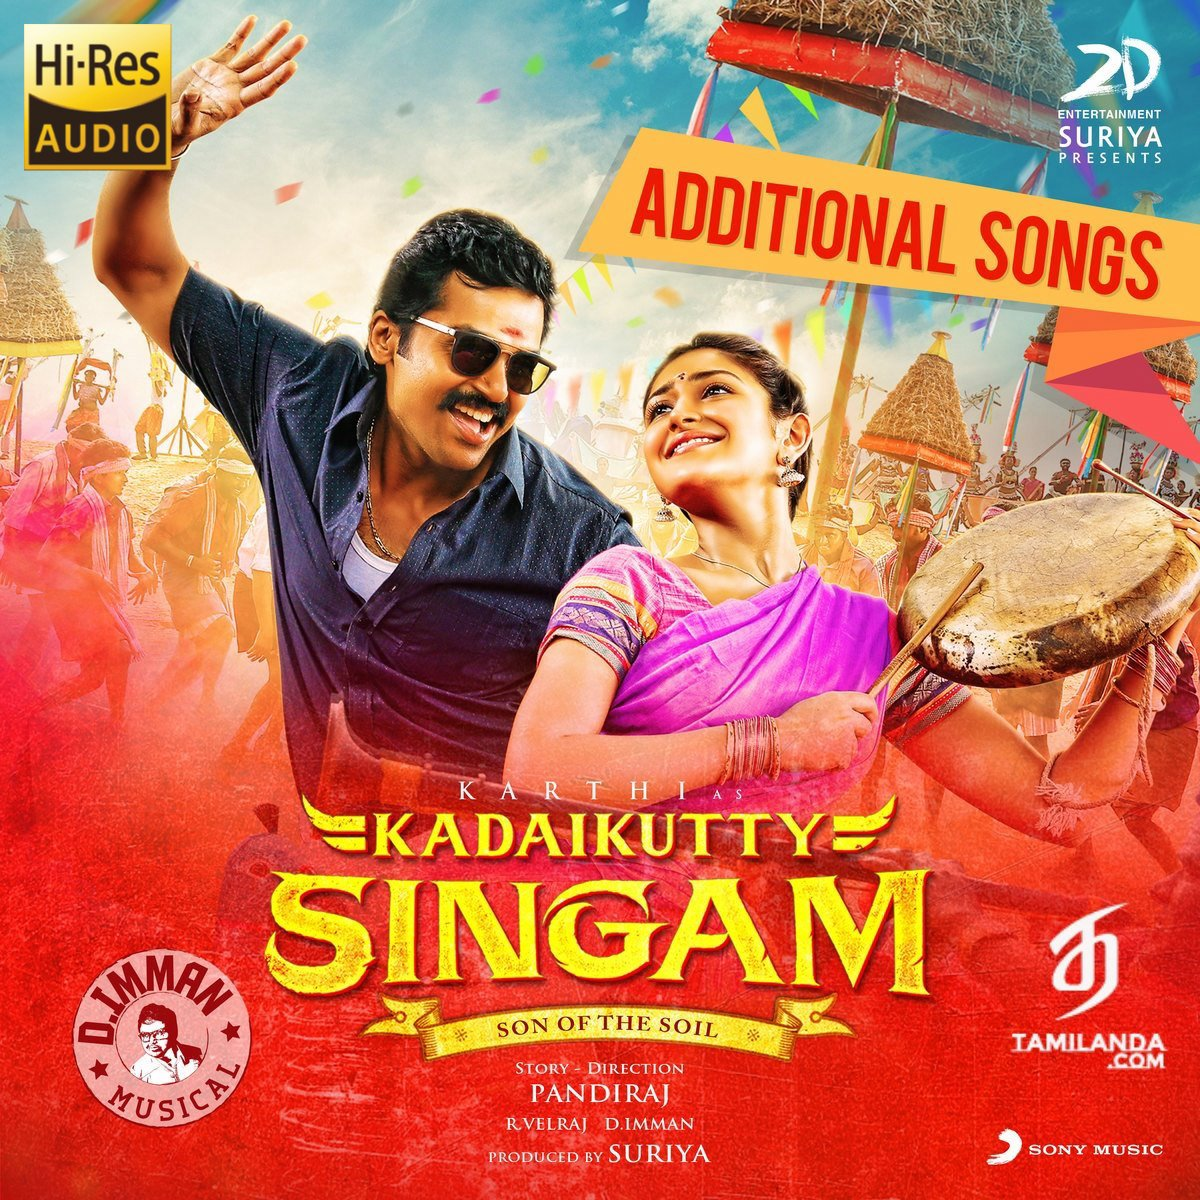 Kadaikutty Singam (Additional Songs) in 24 BIT 48 KHZ FLAC Songs